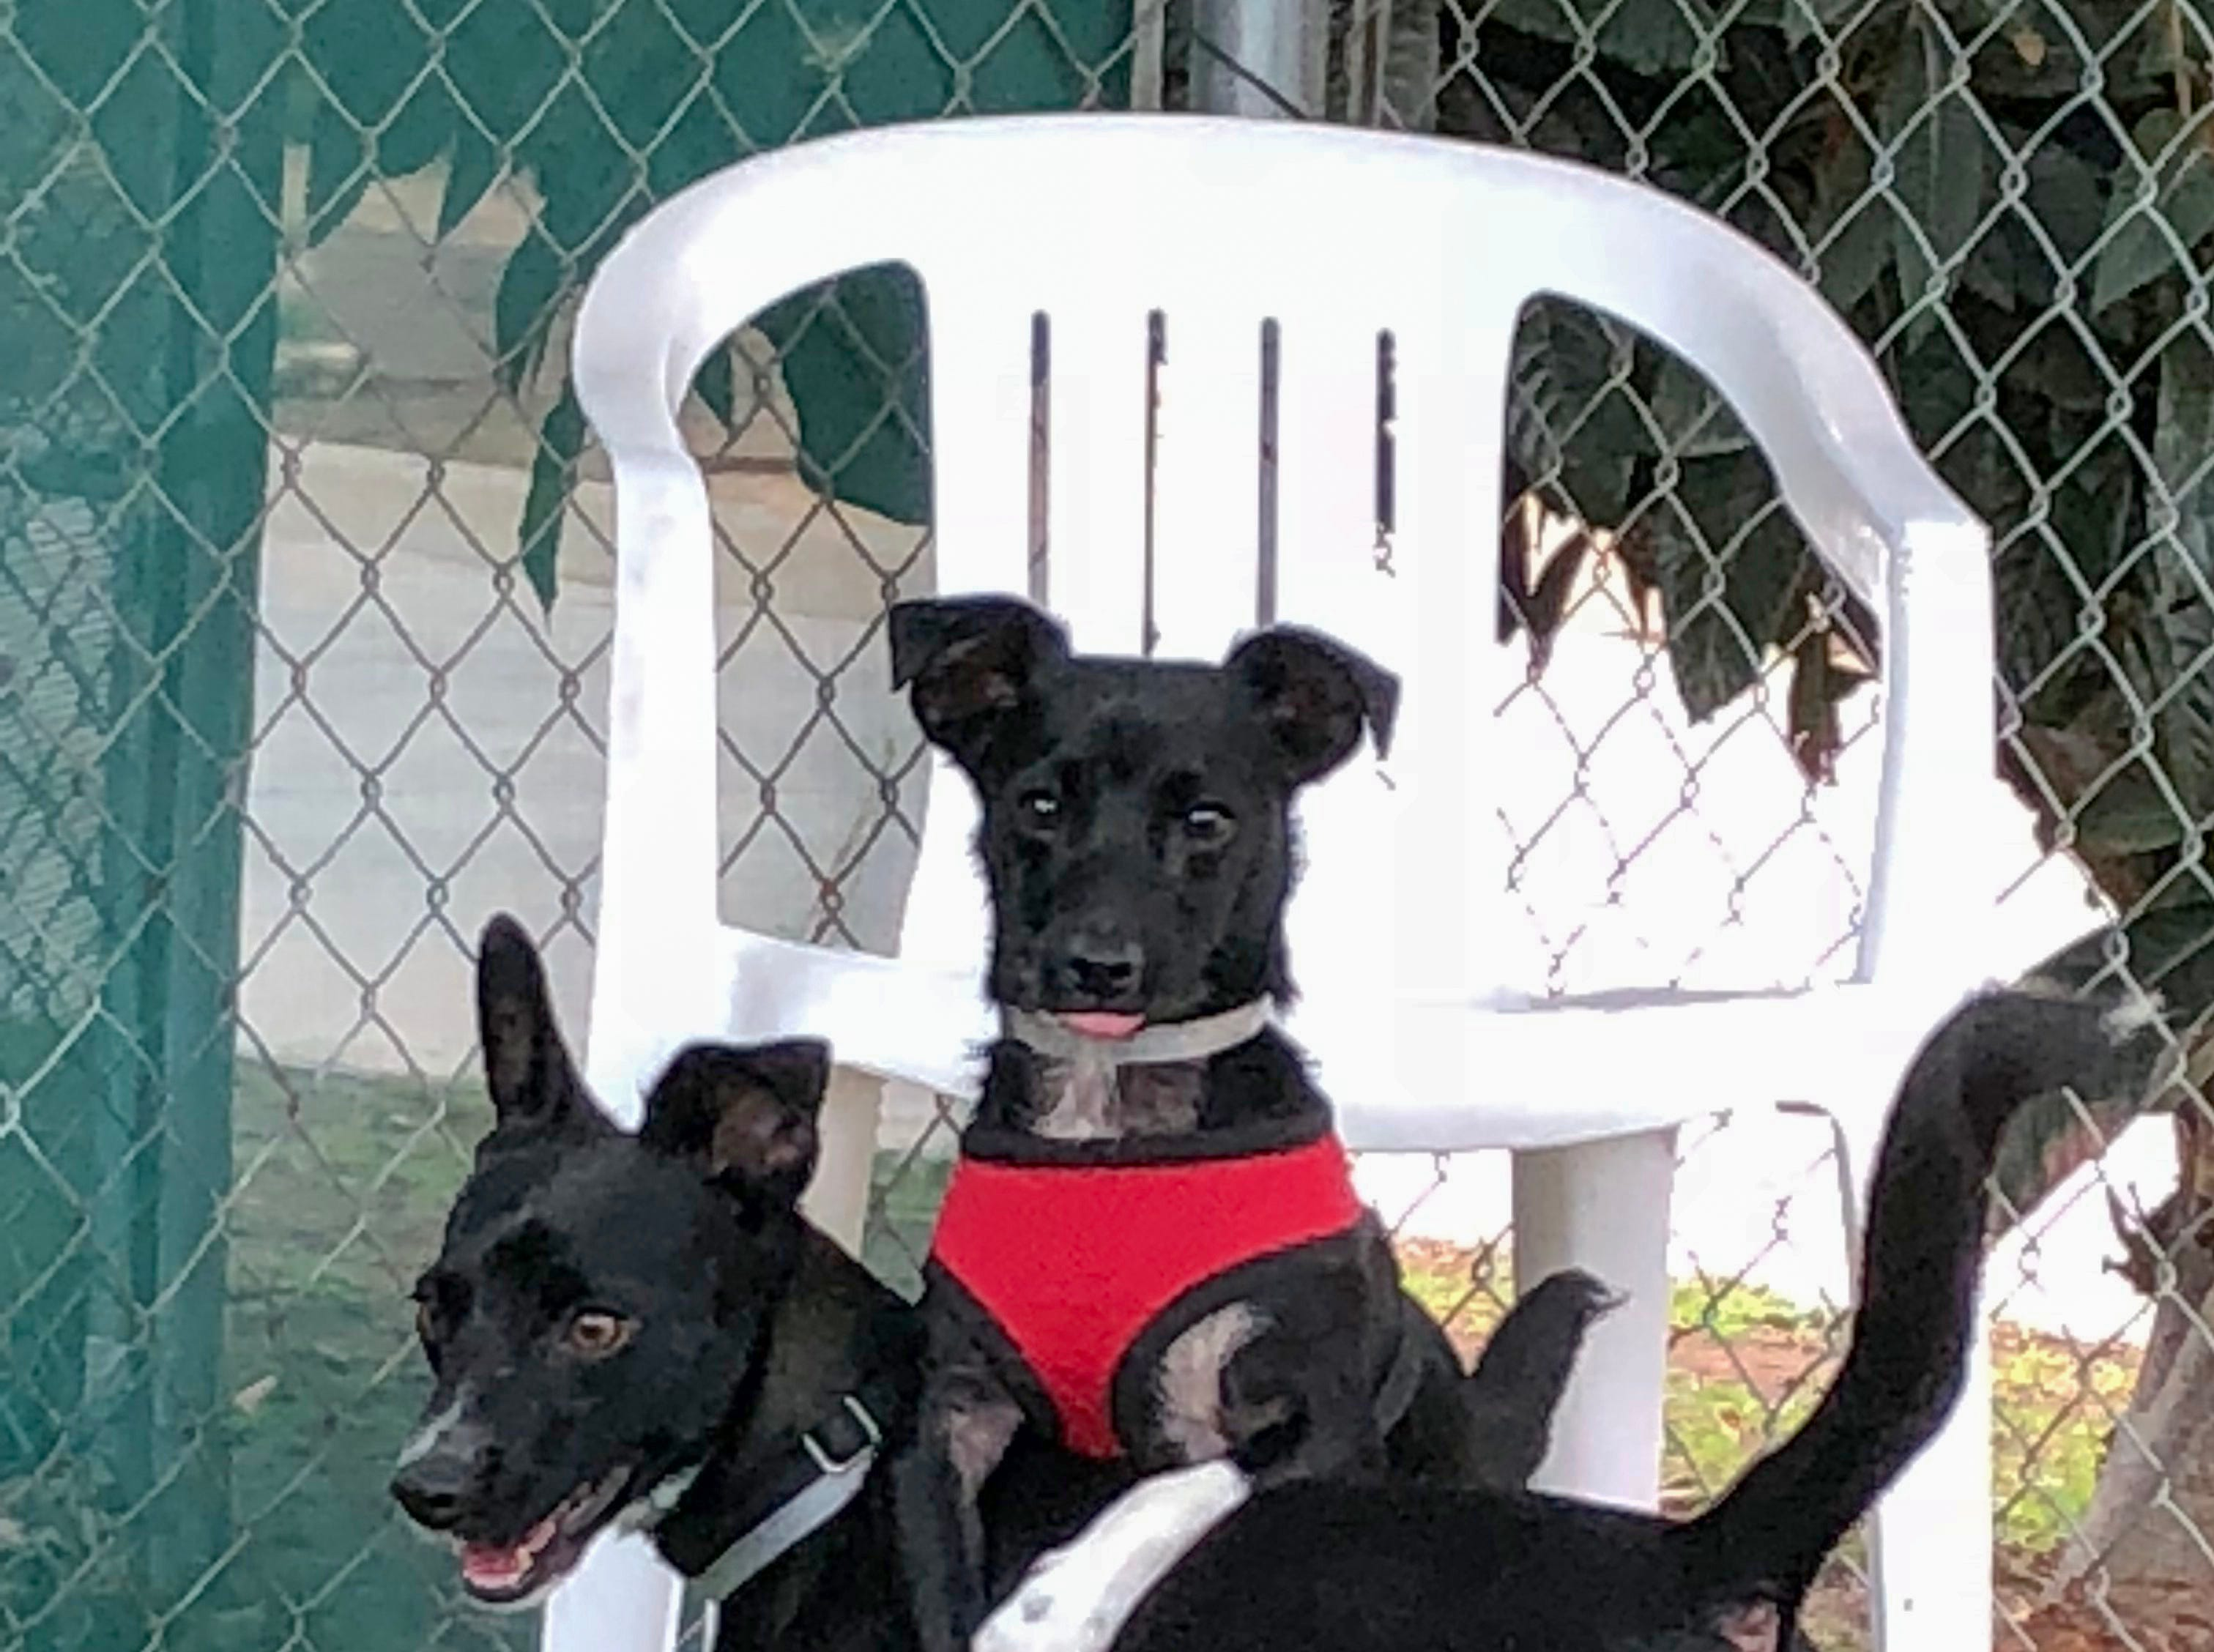 Cute as can be, but a little shy in new situations, Ajax and Sidney are best friends that can be adopted as a pair or separately. Given time, they warm up to strangers and become playful and affectionate. Both appear to be house-trained. They may need a little work to build their confidence, but they are worth the effort spent and will eagerly return the love that is bestowed on them. To adopt Ajax and Sidney request A5206536 and A5206535. The Agoura Hills Animal Care Center is at 29525 Agoura Road, Agoura Hills. Occasionally pets have already been adopted. To check availability, call 818-991-0071 or visit animalcare.lacounty.gov.